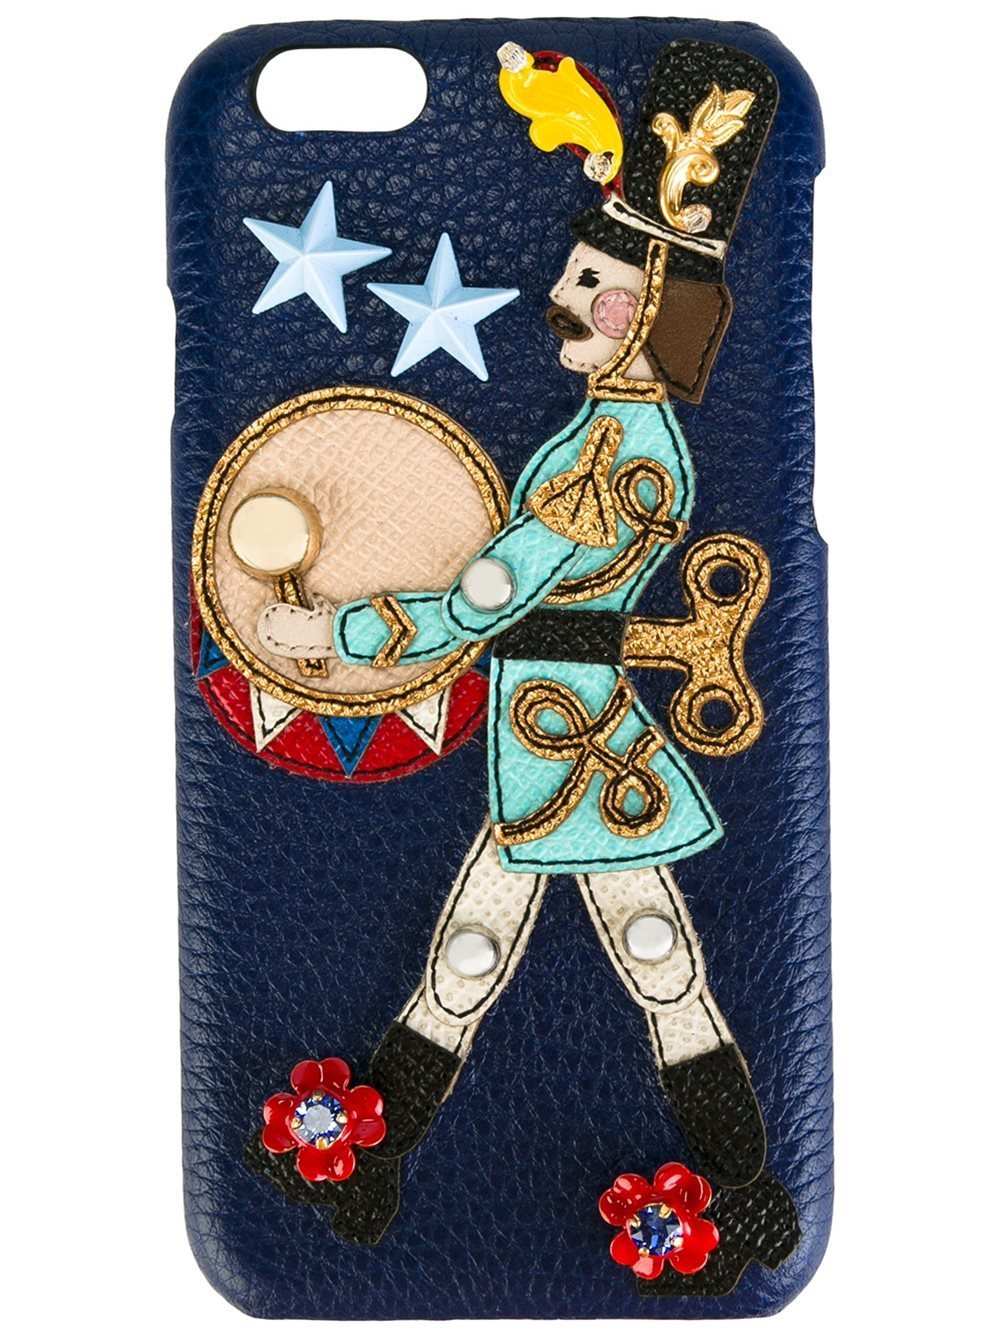 【スマホケース】Dolce & Gabbana Toy Soldier iPhone 6 カバー